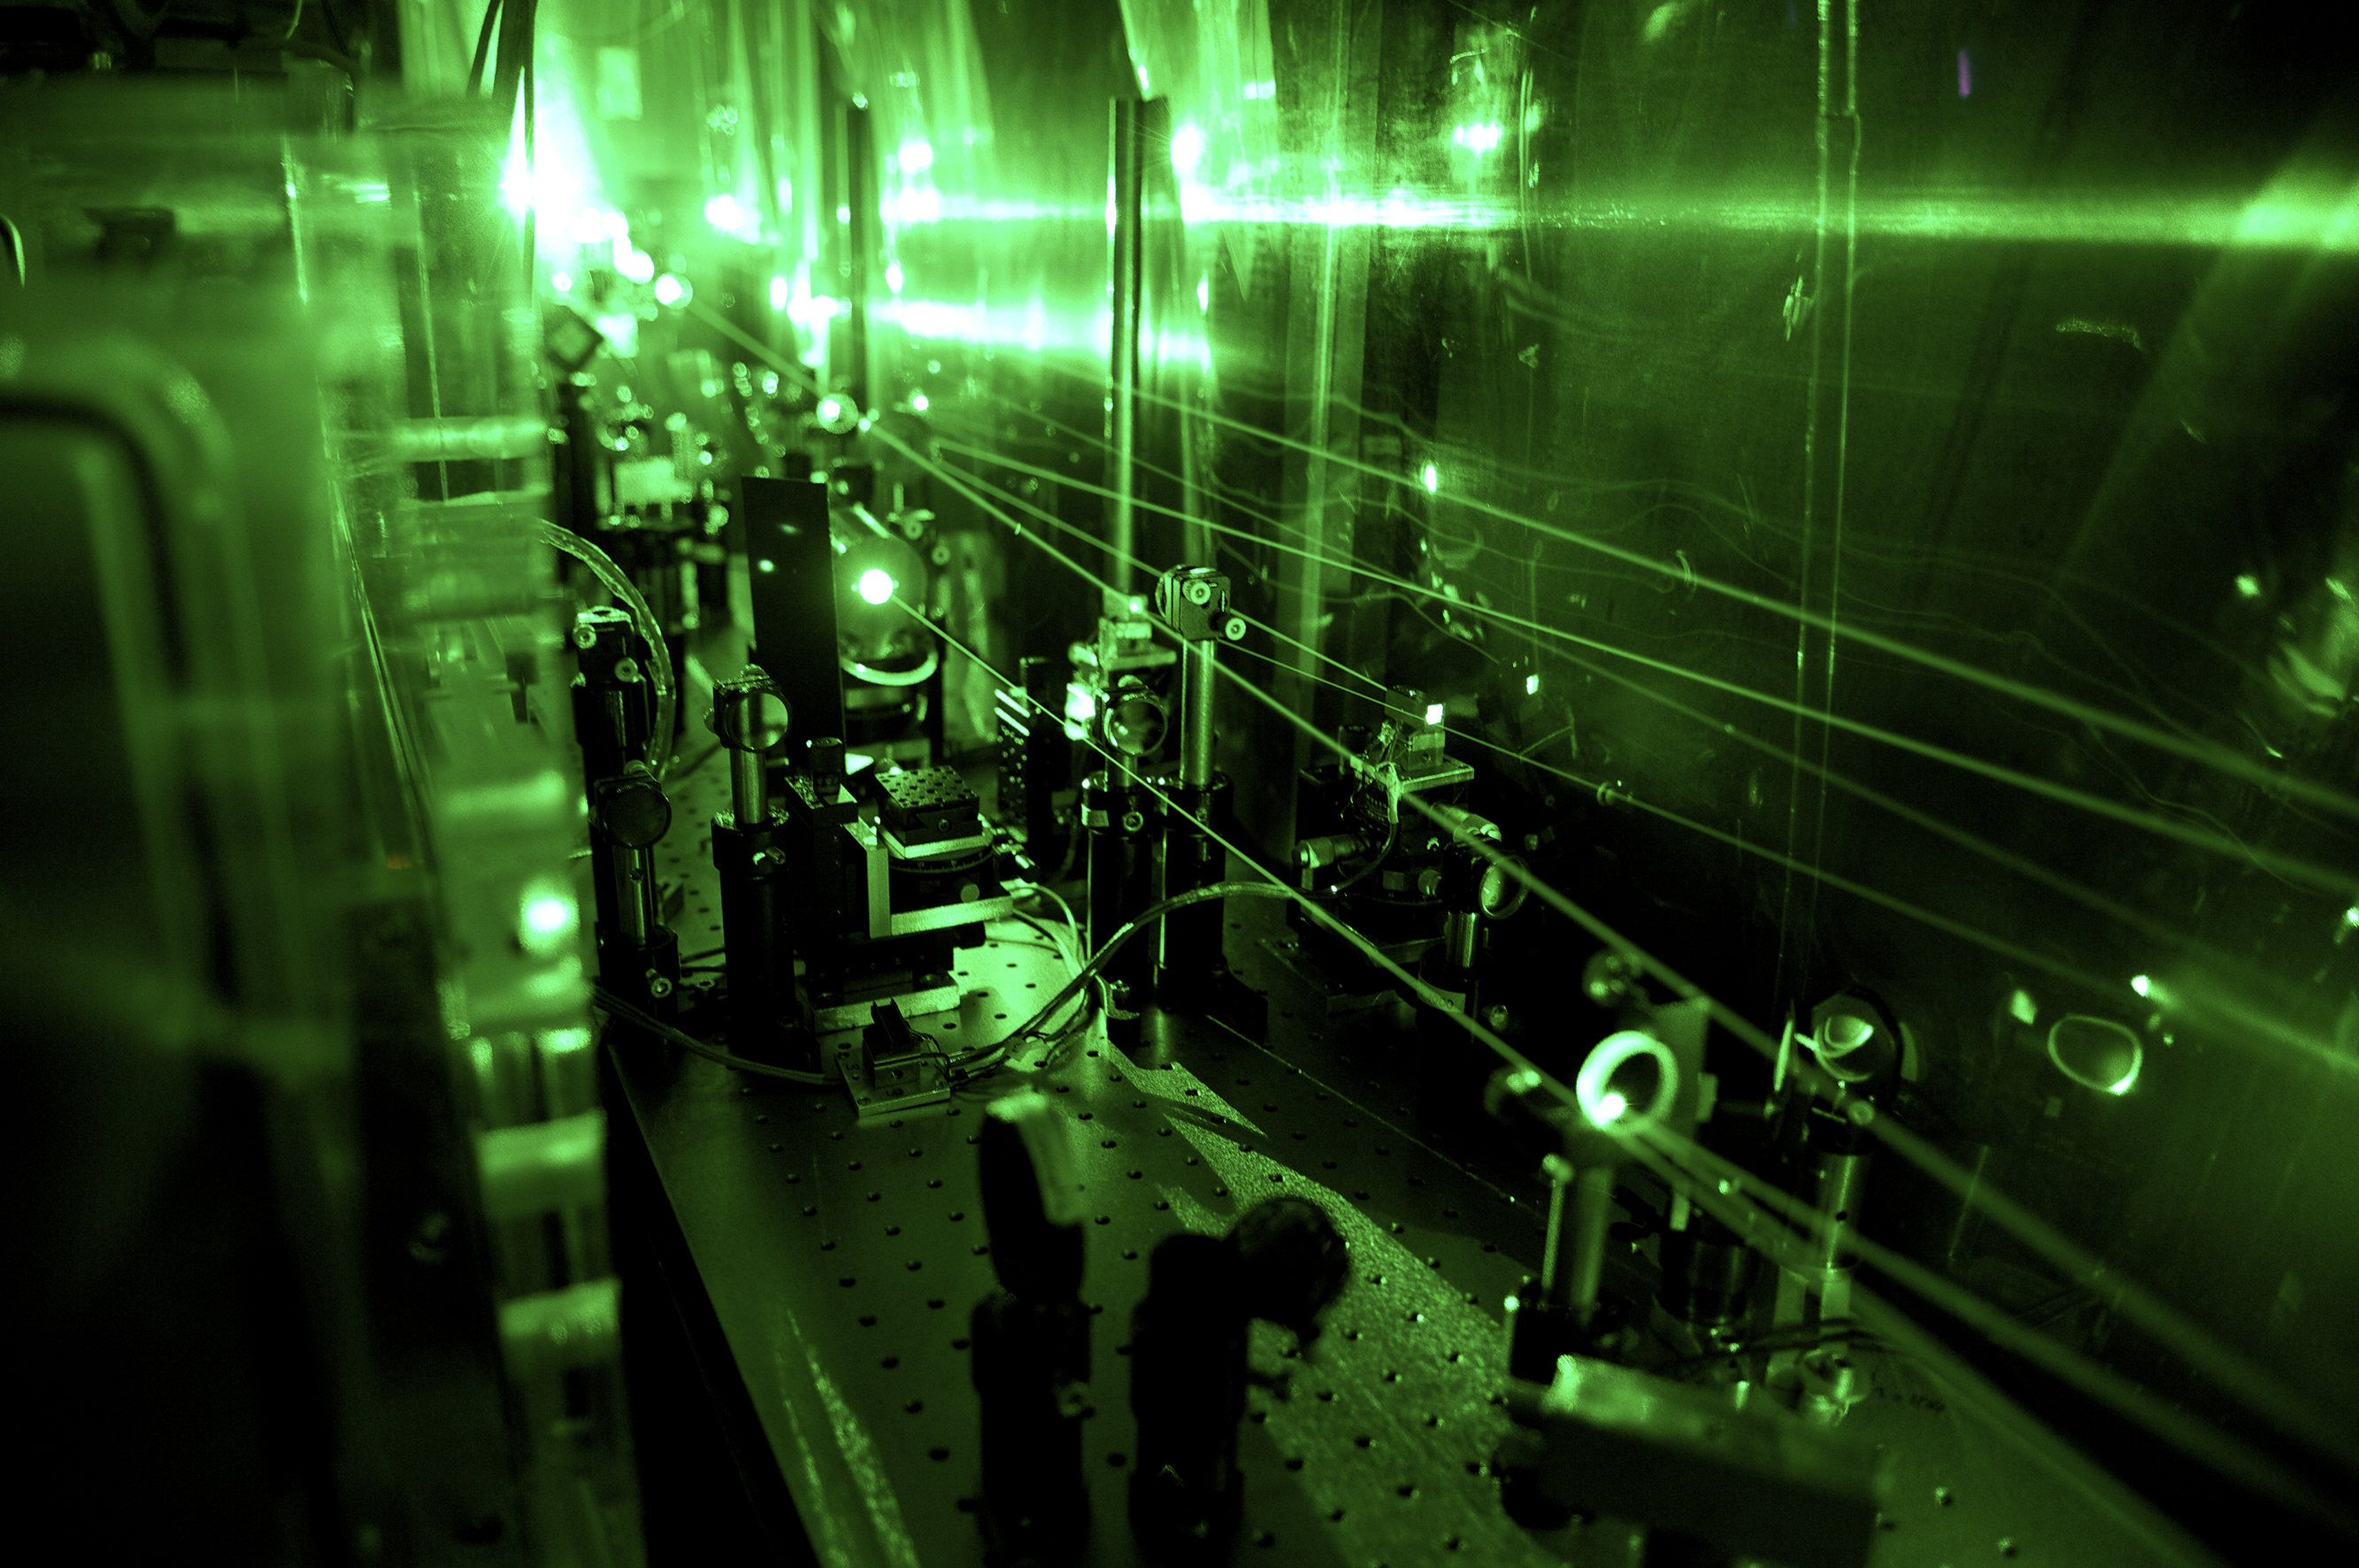 Part of the laser facility needed for the experiment for the determination of the radius of the proton